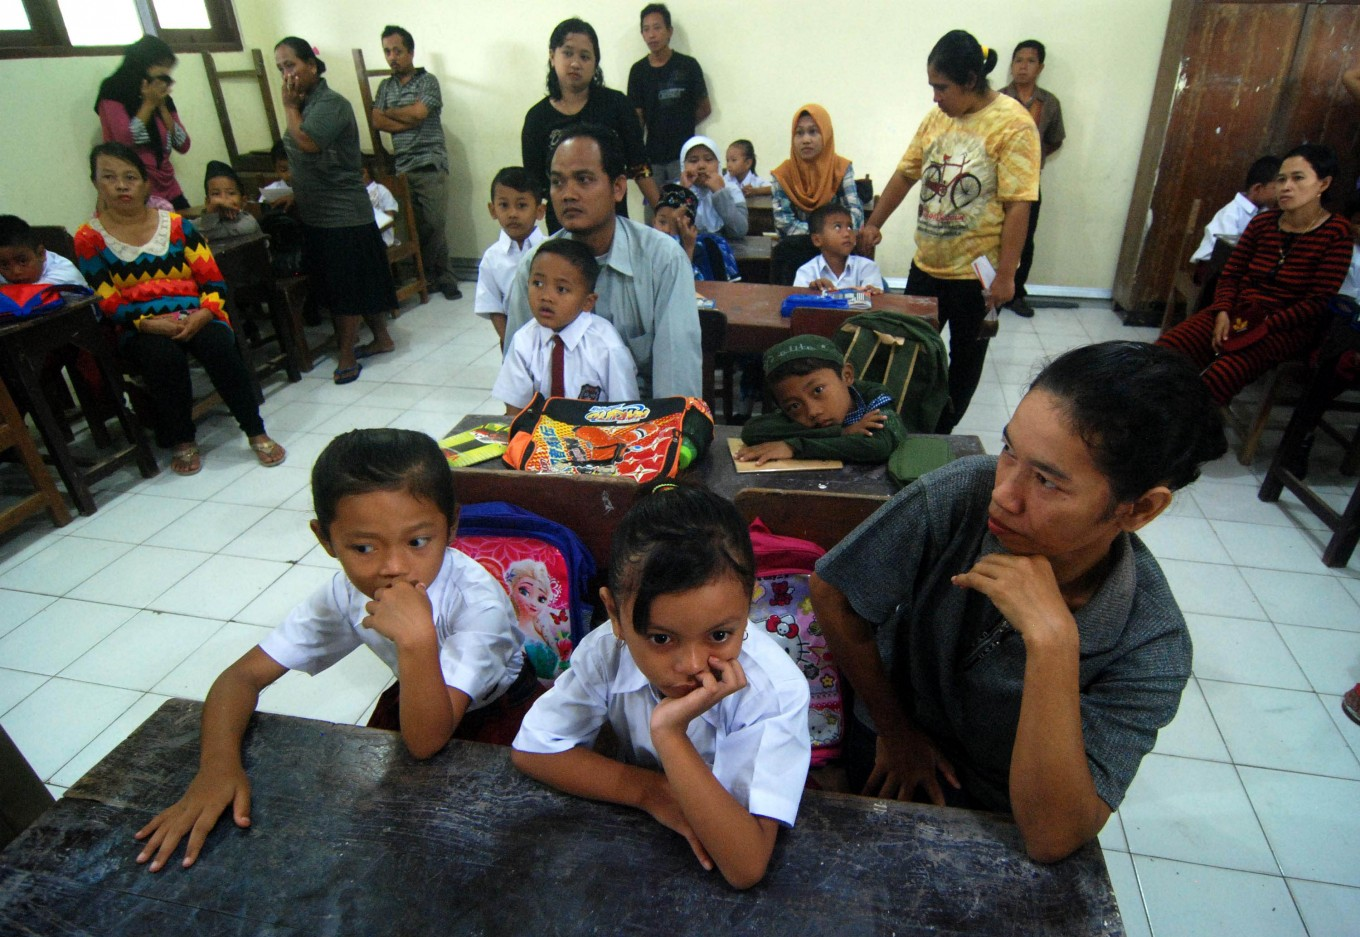 Indonesia needs 'nearly 1 million' new teachers for state schools